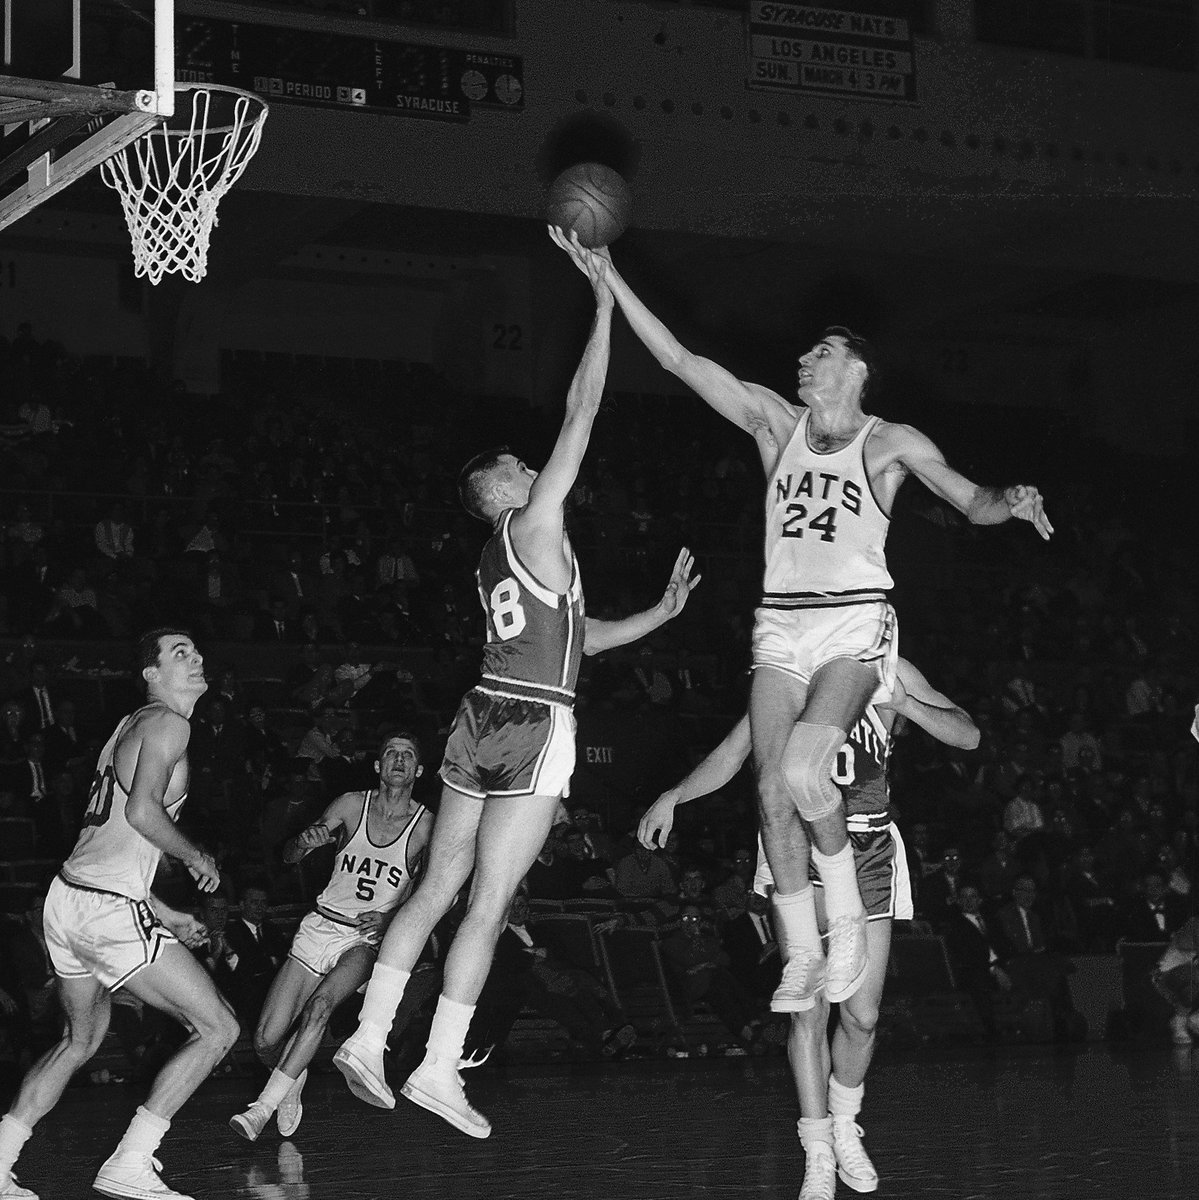 Sixers History On Twitter Fun Fact Bianchi Was Juliuserving S First Coach In Pro Basketball Bianchi Was The Head Coach Of The Aba S Virginia Squires When Doc Debuted There In The 1971 72 Season